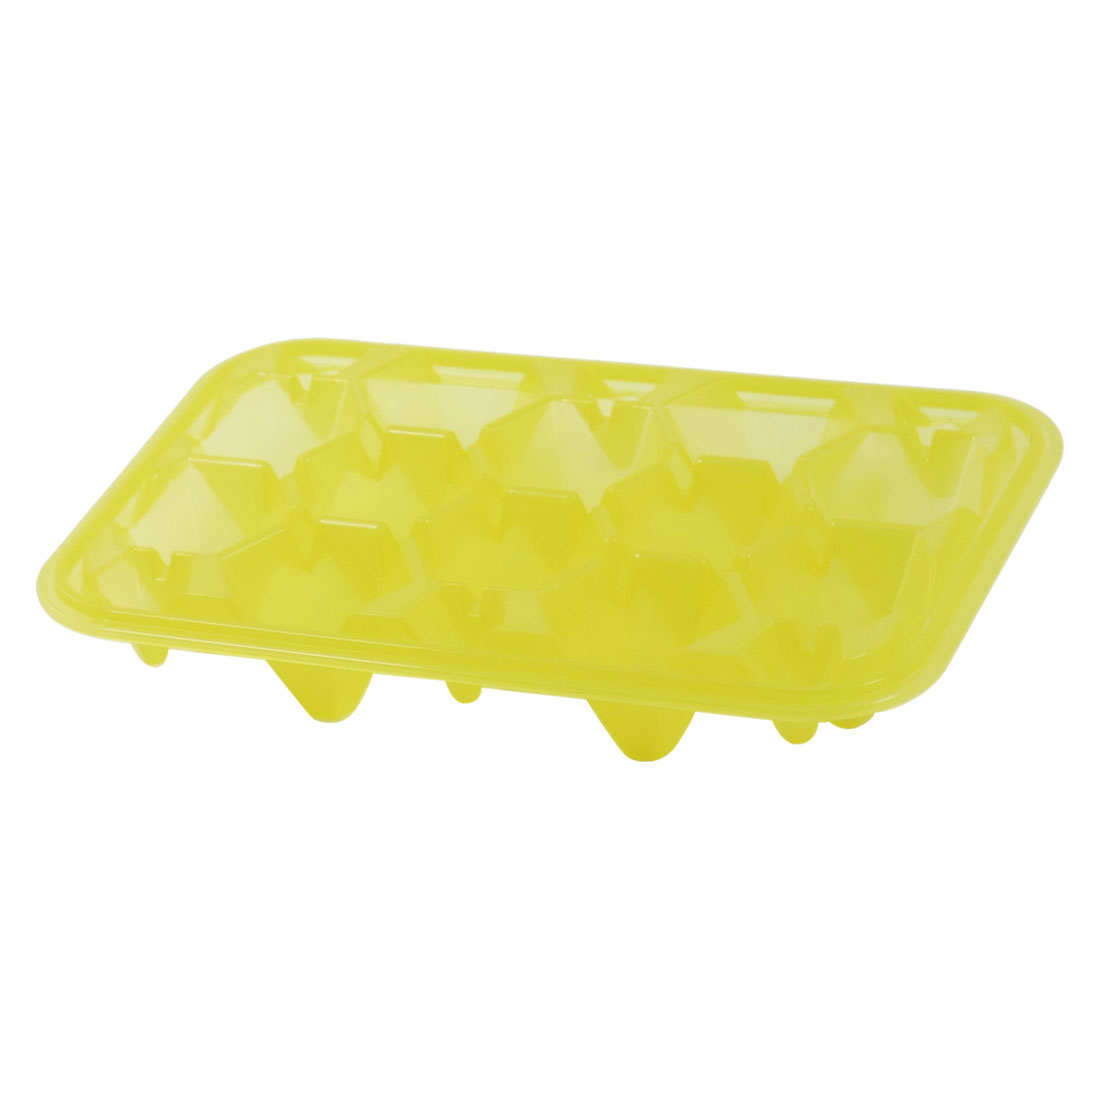 Clear Yellow Plastic Polygon Shaped Slots 12 Sections Ice Cube Mold Case